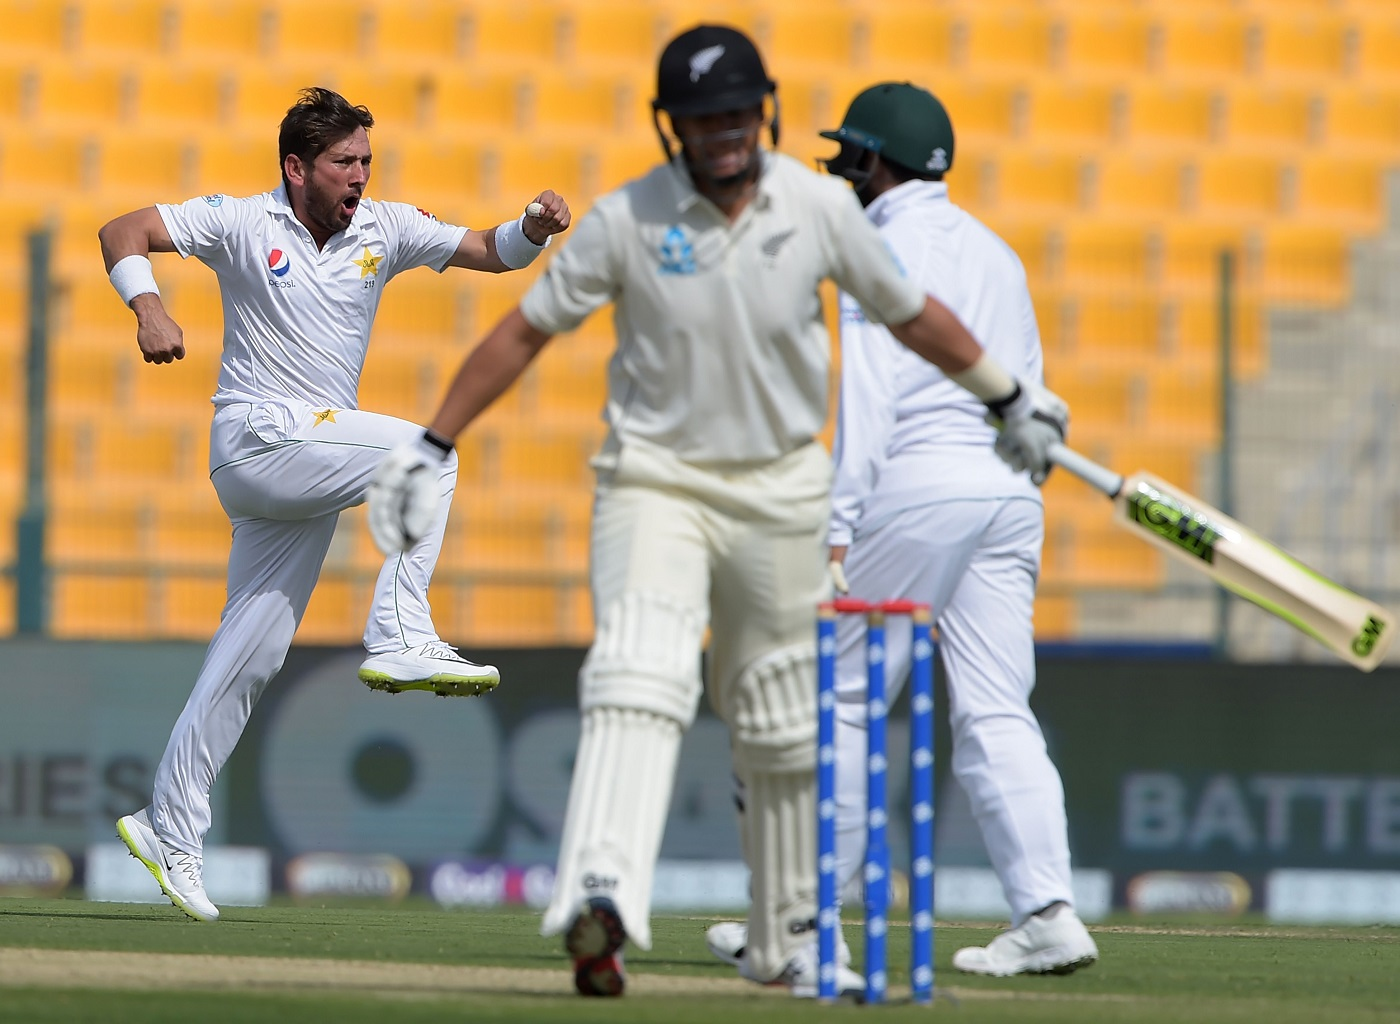 Pakistan finish Day 1 at 59/2 after bowling New Zealand out for just 153